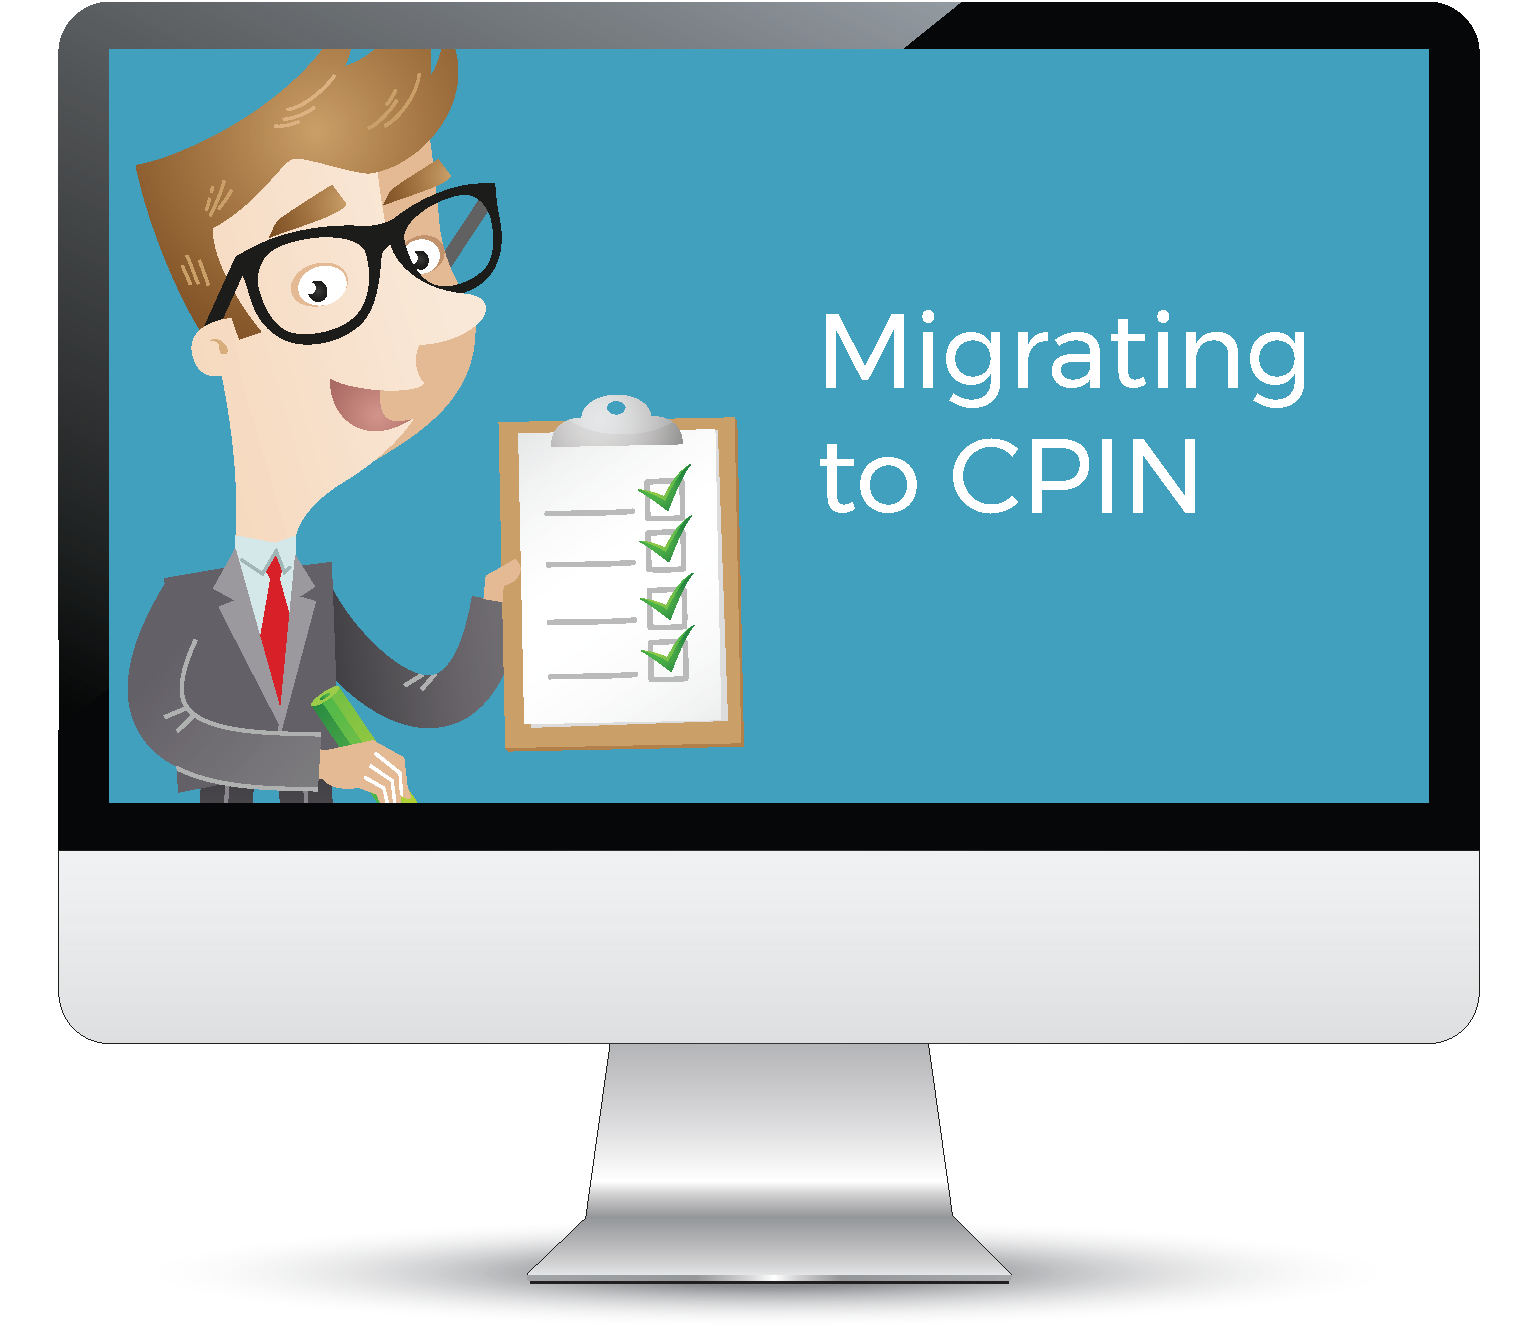 Migrating to CPIN